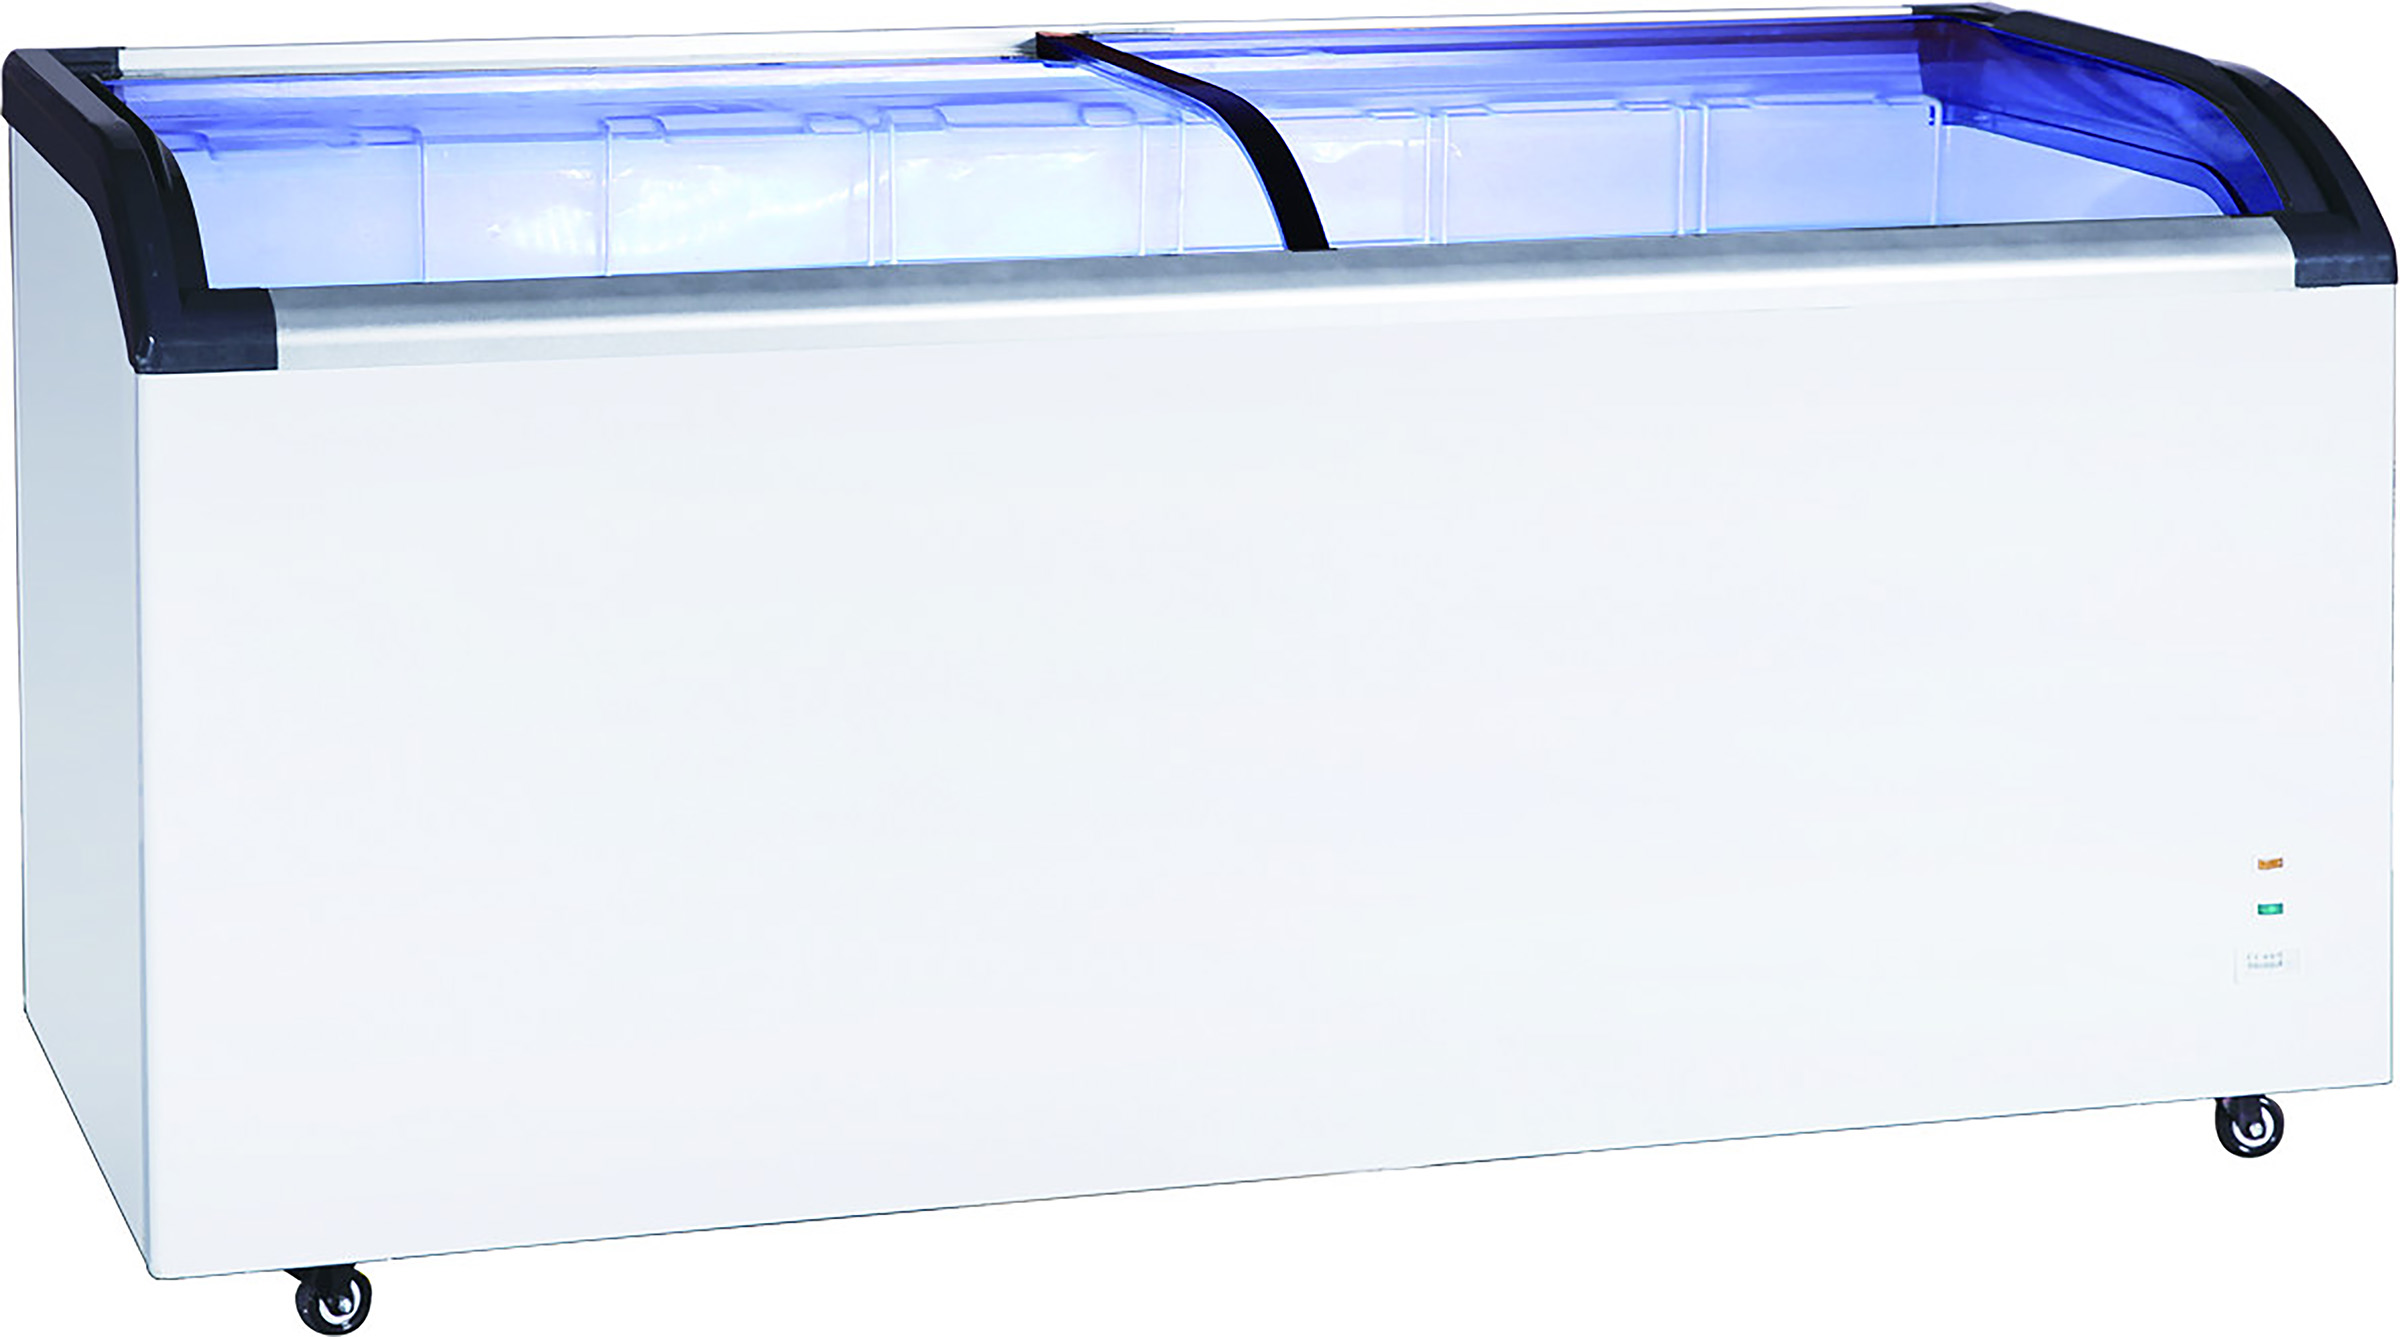 Admiral Craft BDCF-19-CG chest freezer